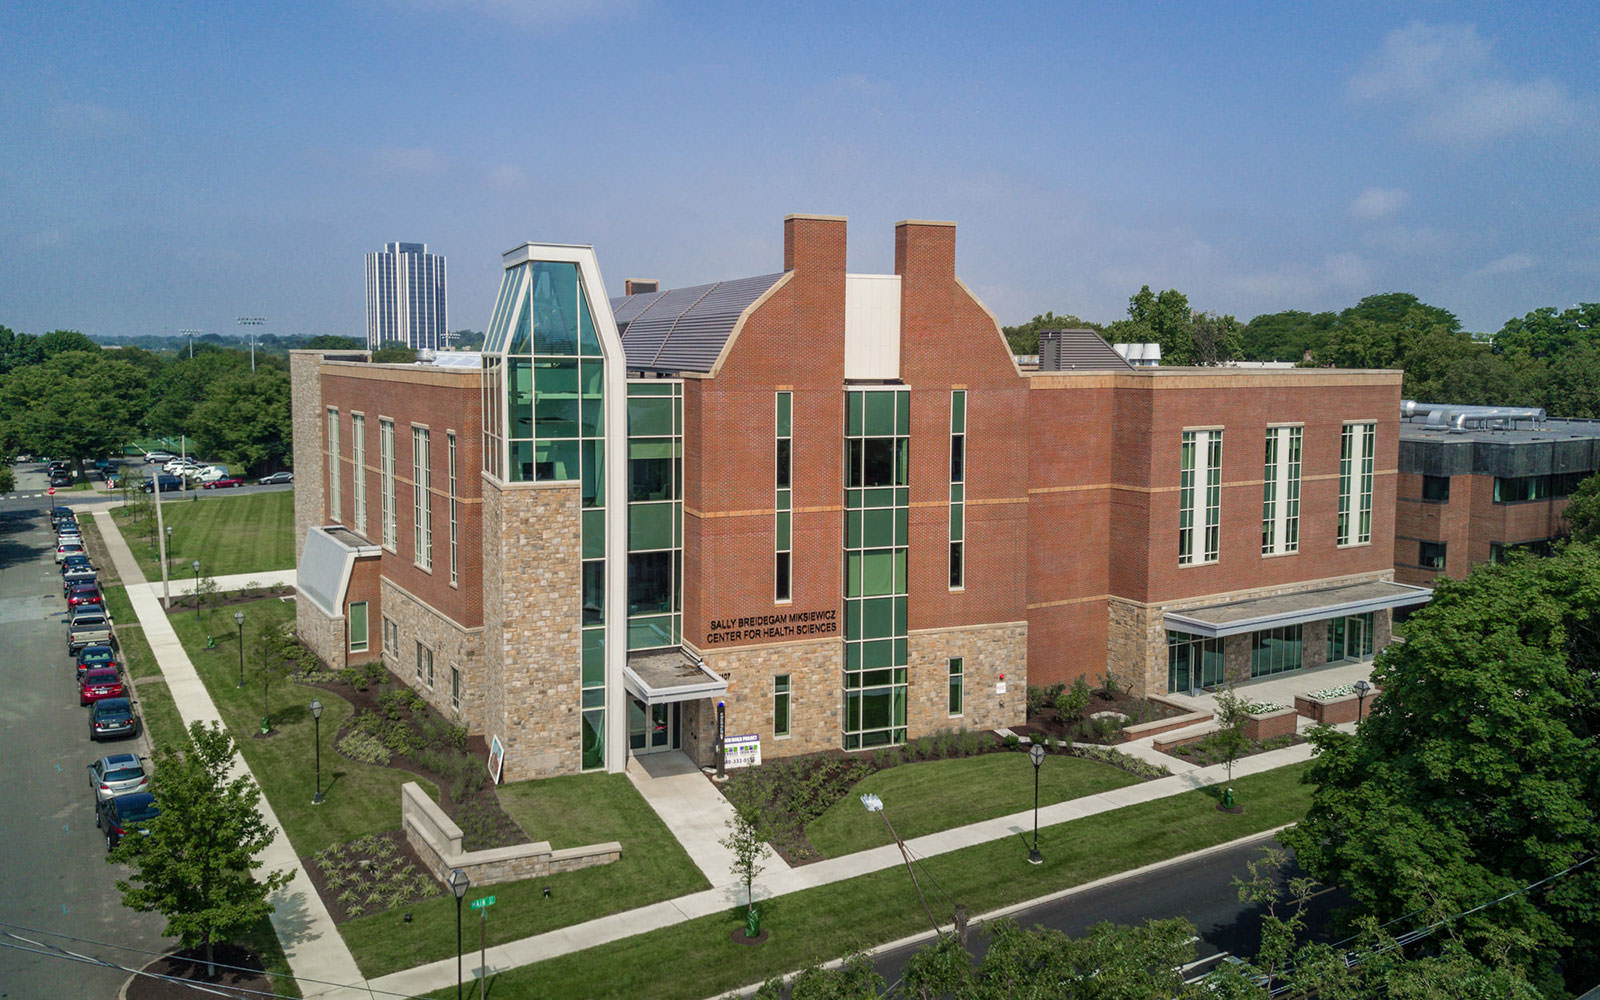 Sally Breidegam Miksiewicz Center for Health Sciences Building